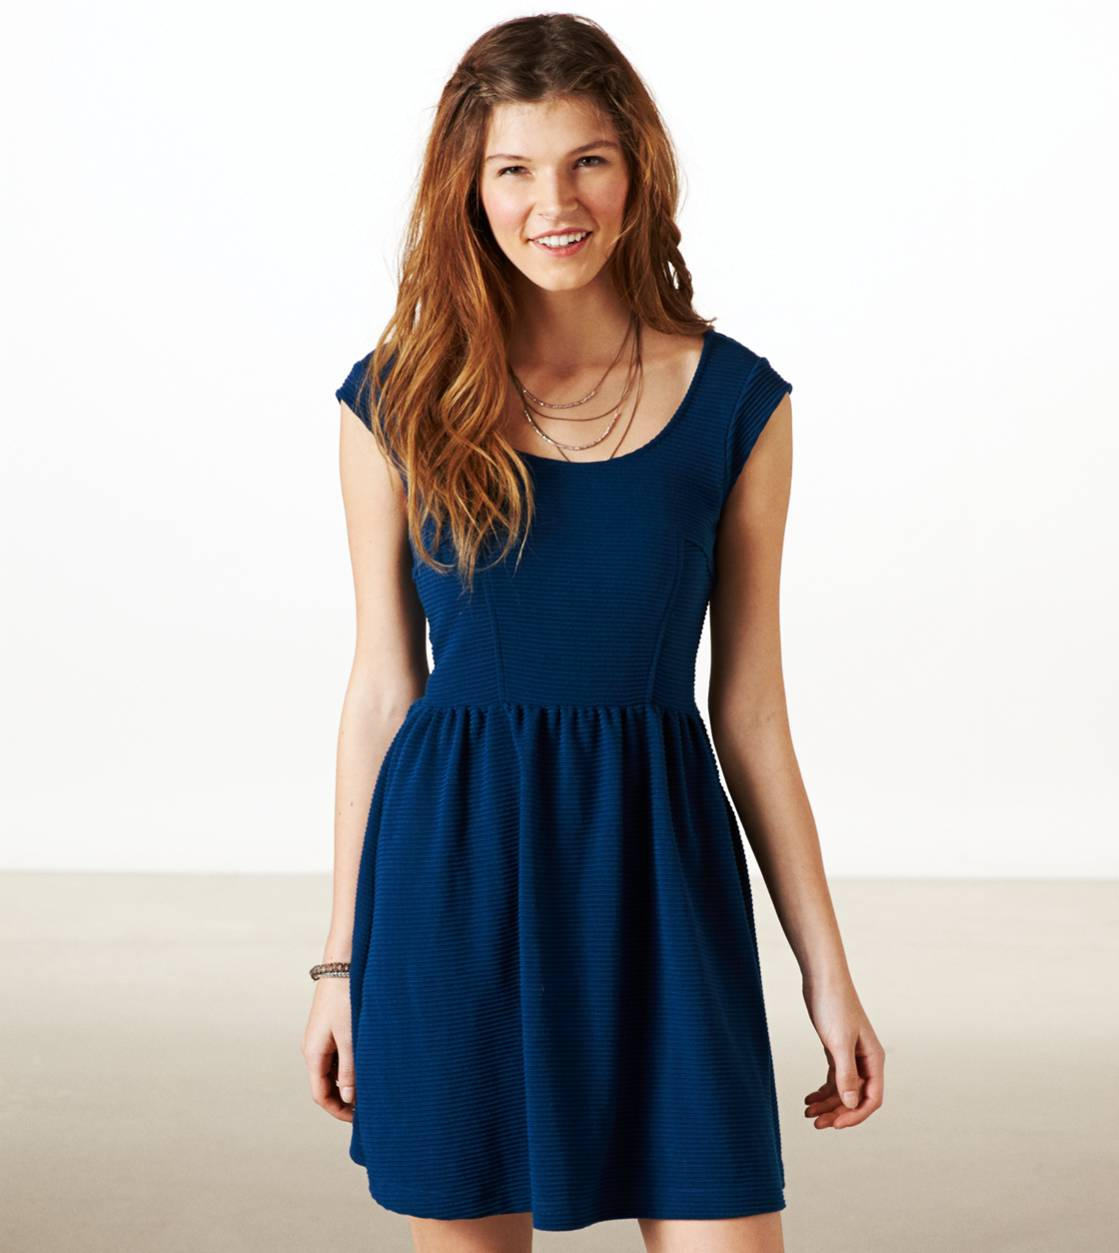 Poseidon Blue AE Ribbed Fit & Flare Dress